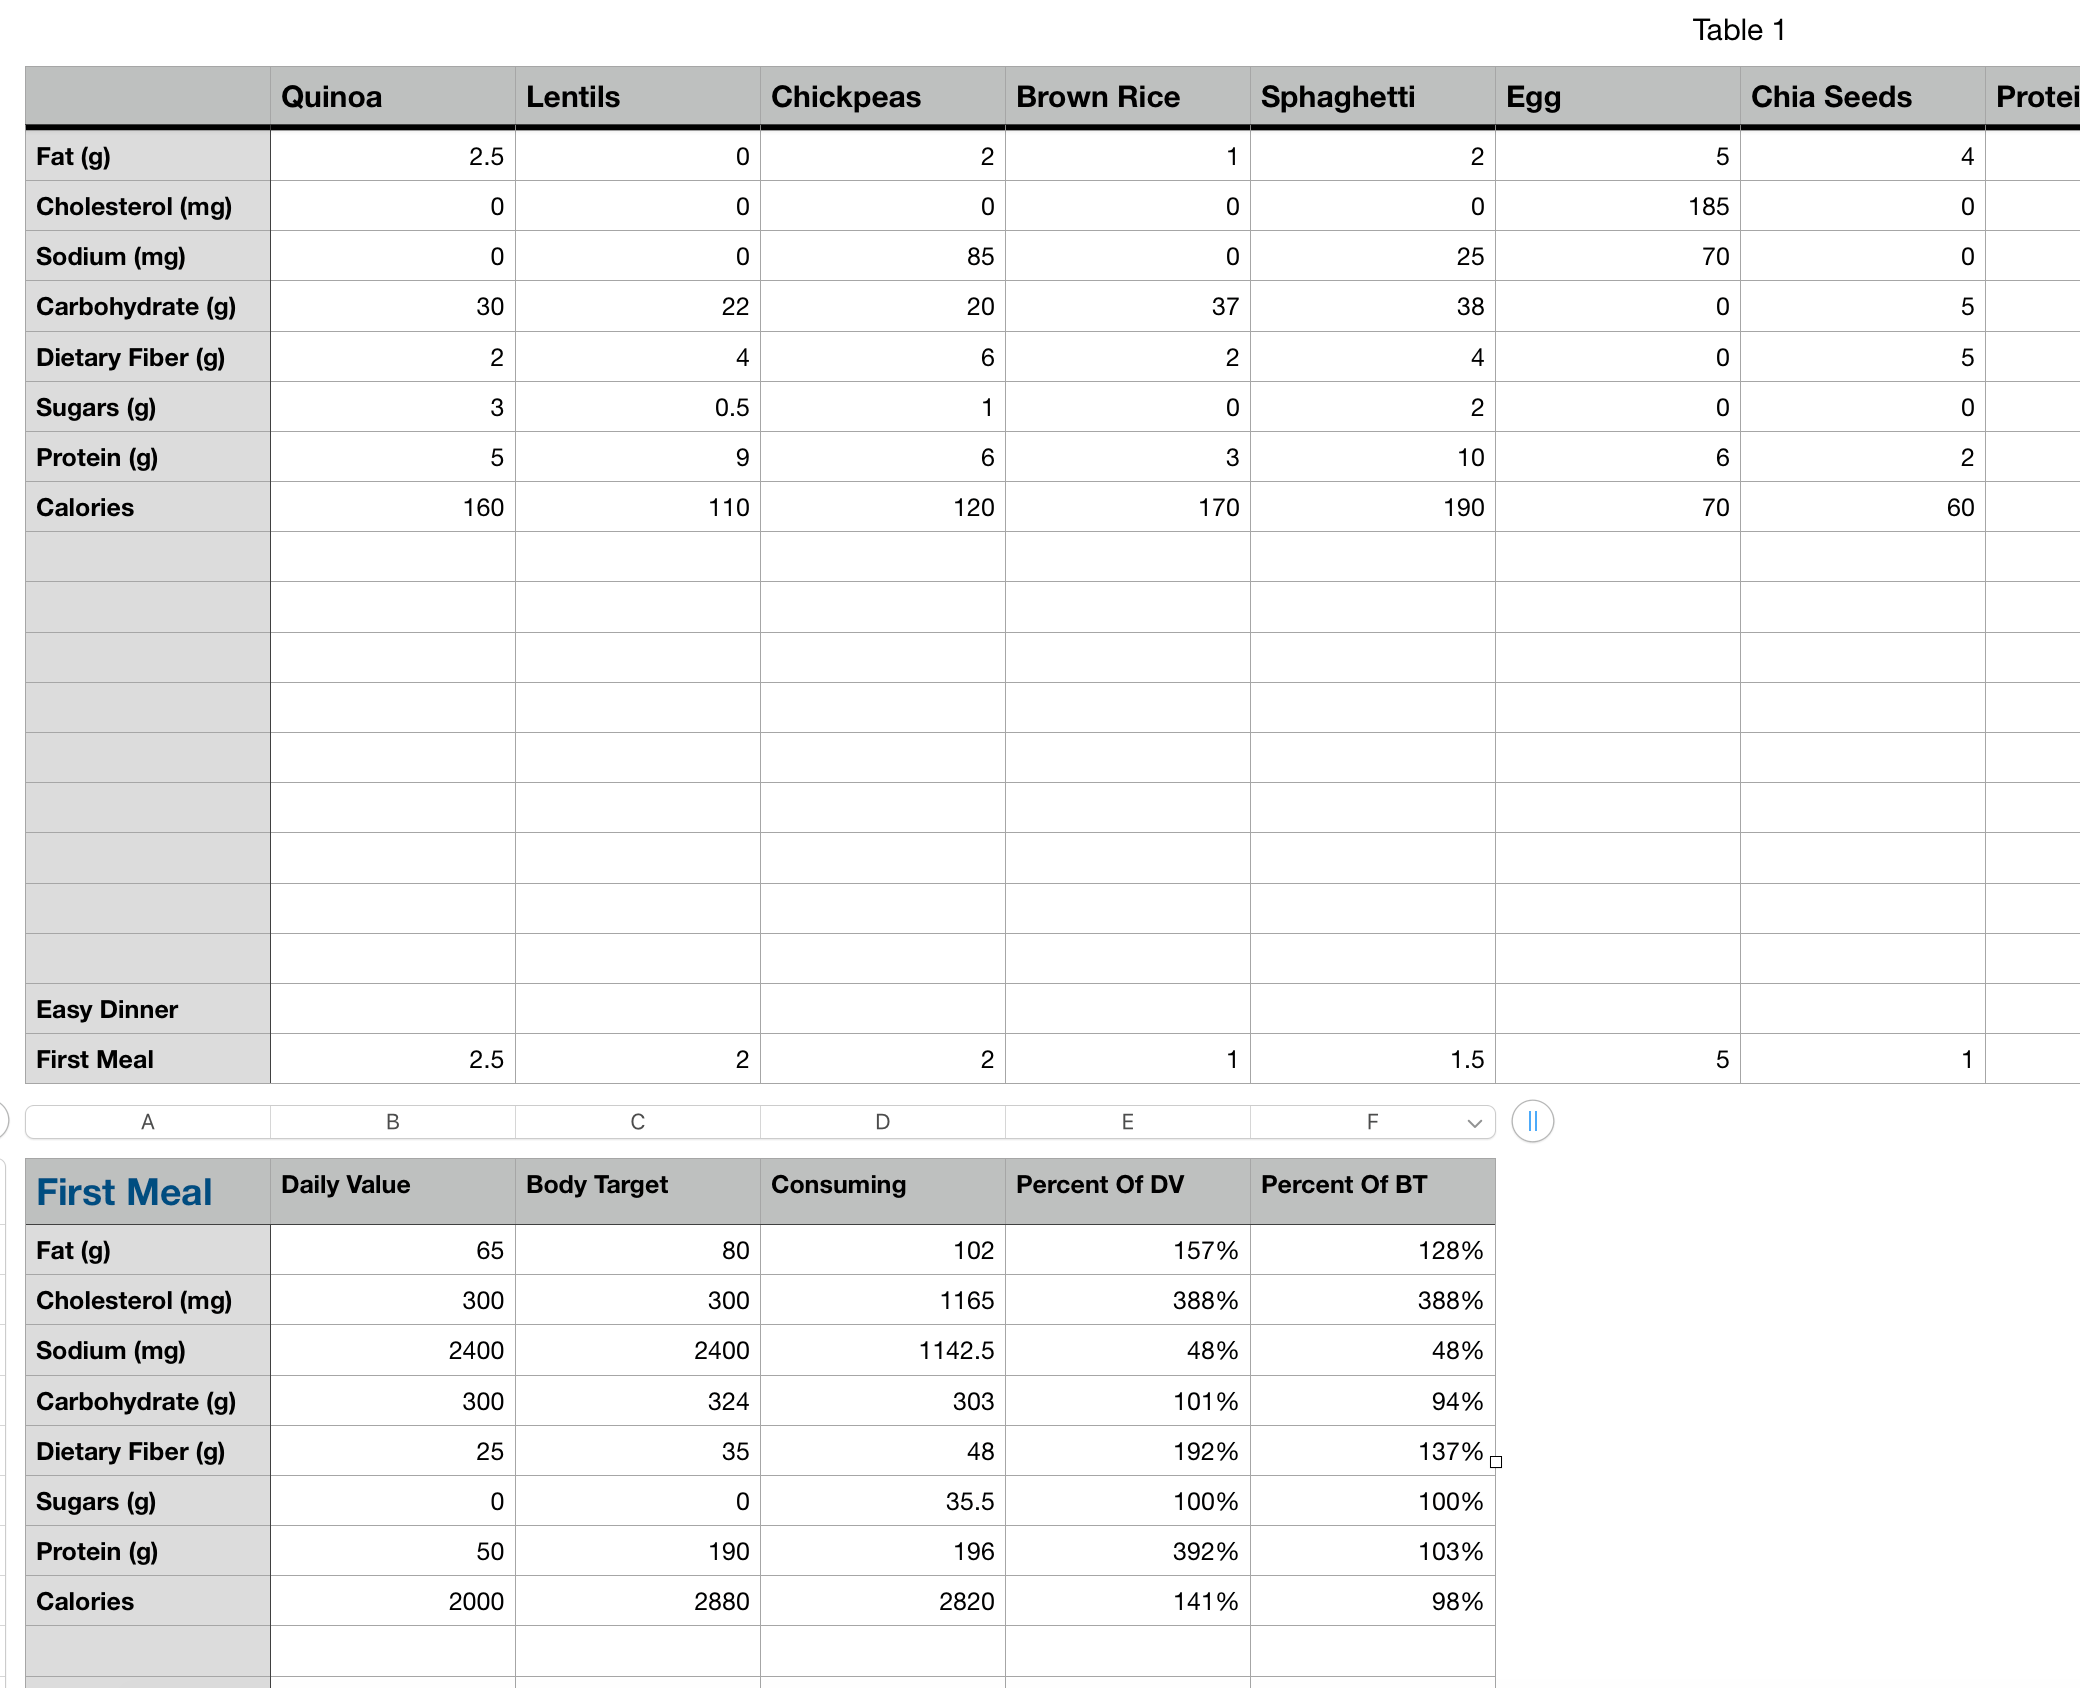 In Numbers Excel How Can I Do A Sumproduct Only On Rows Matching A Specific Criteria